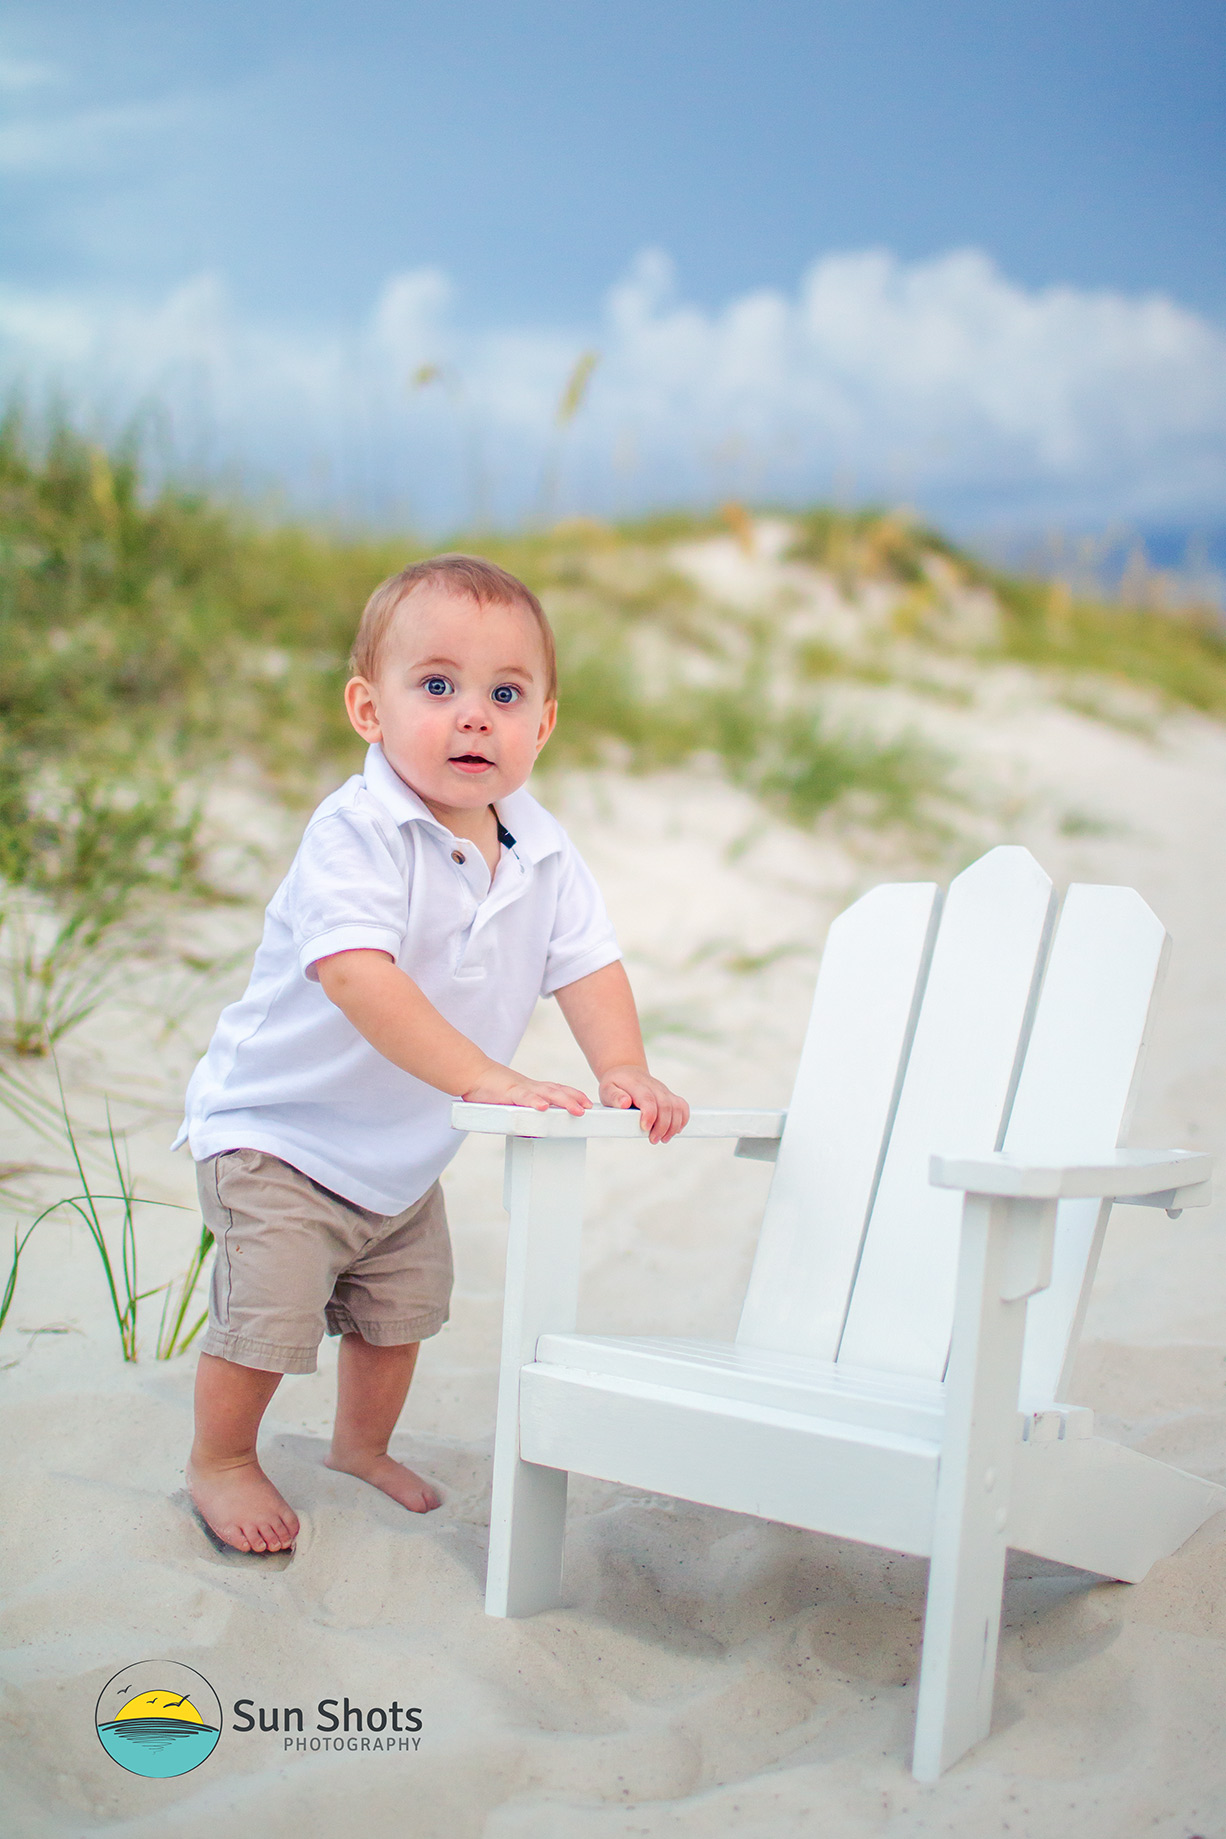 Boy posing for picture on beach